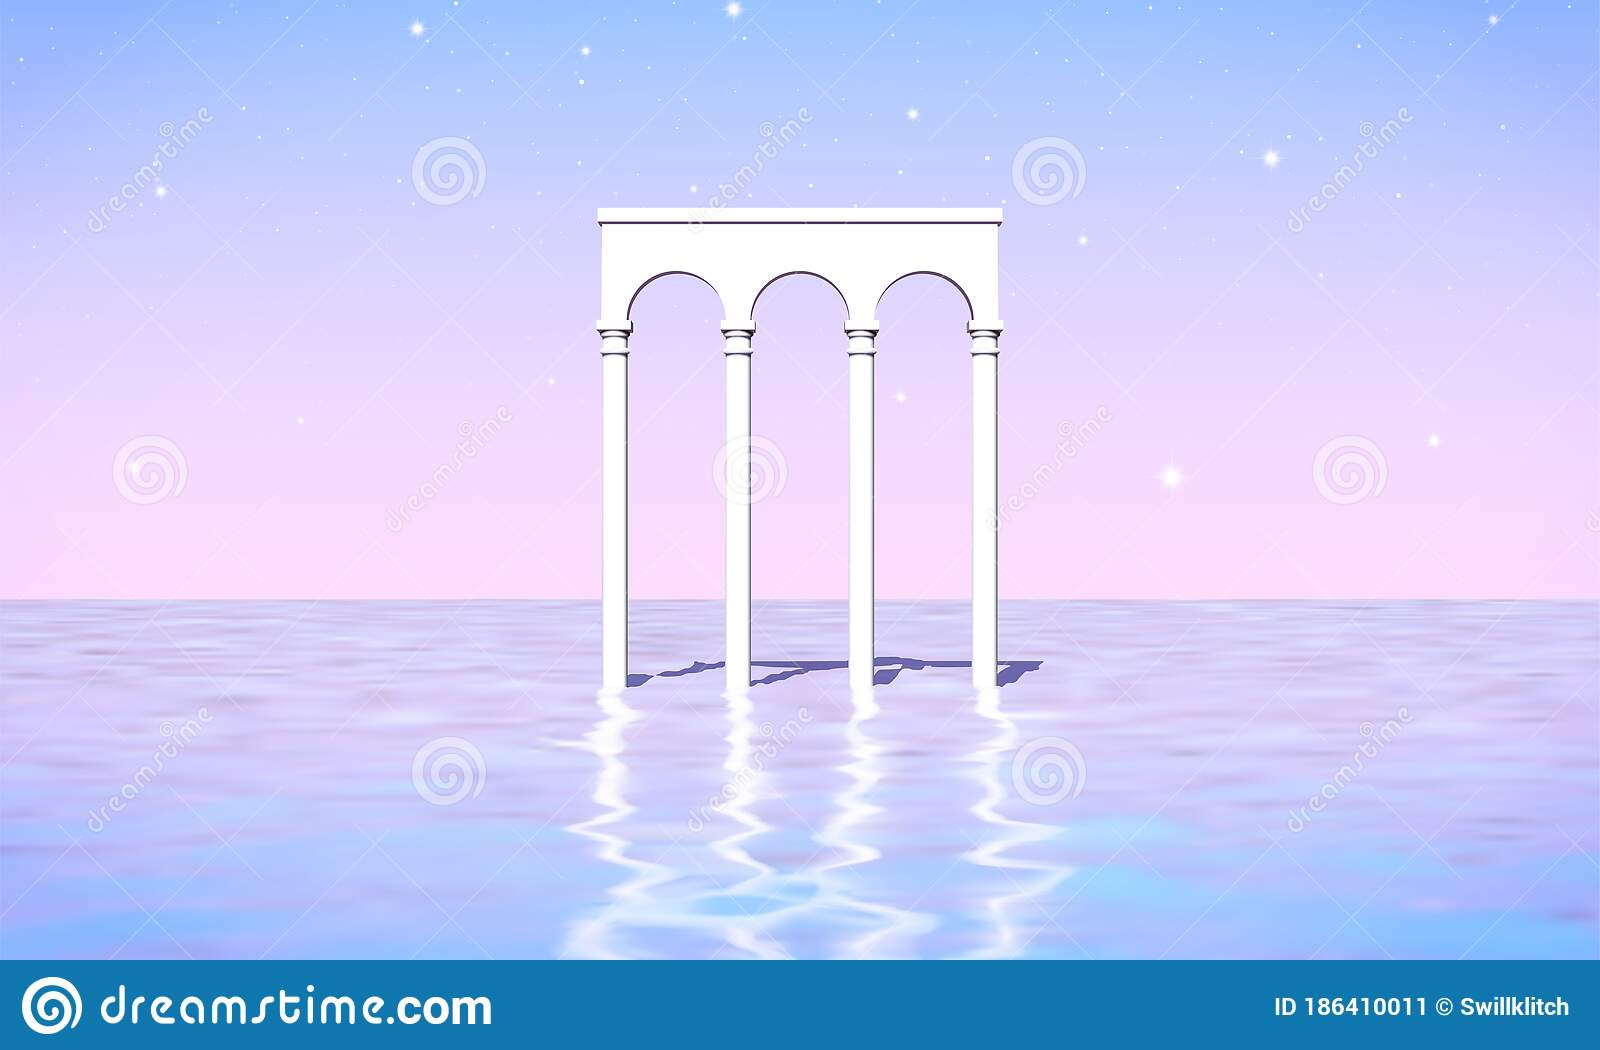 Aesthetic Landscape With Colonnade Of White Pillars In Surreal Sea 90s Or 80s Styled Vaporwave Background With Pastel Stock Vector Illustration Of Beach Gate 186410011